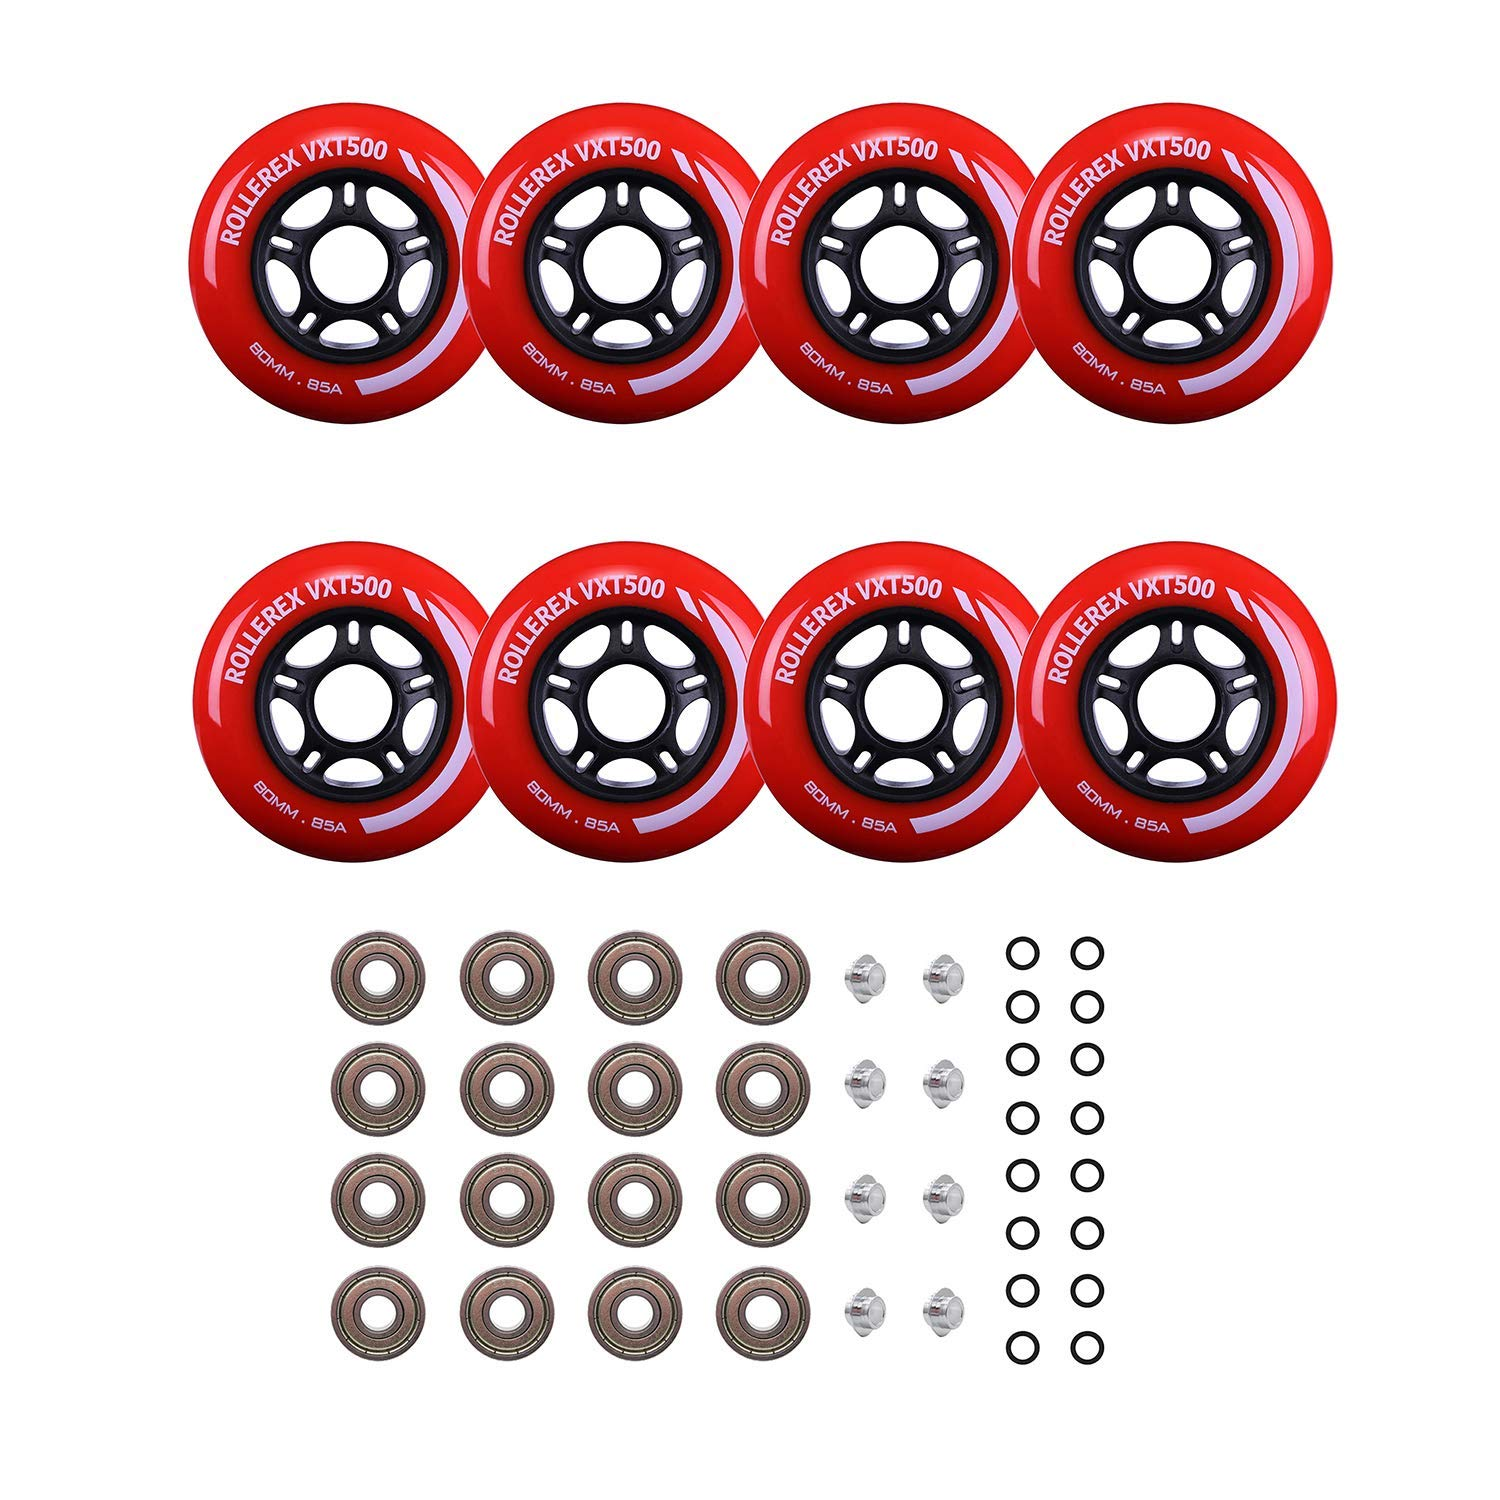 Rollerex Inline Skate Wheels VXT500 80mm (8-Pack or 2-Pack or 2 Wheels w/Bearings, Spacers and Washers) (72mm Rocket Red (8 Wheels w/Bearings, spacers and washers)) by Rollerex